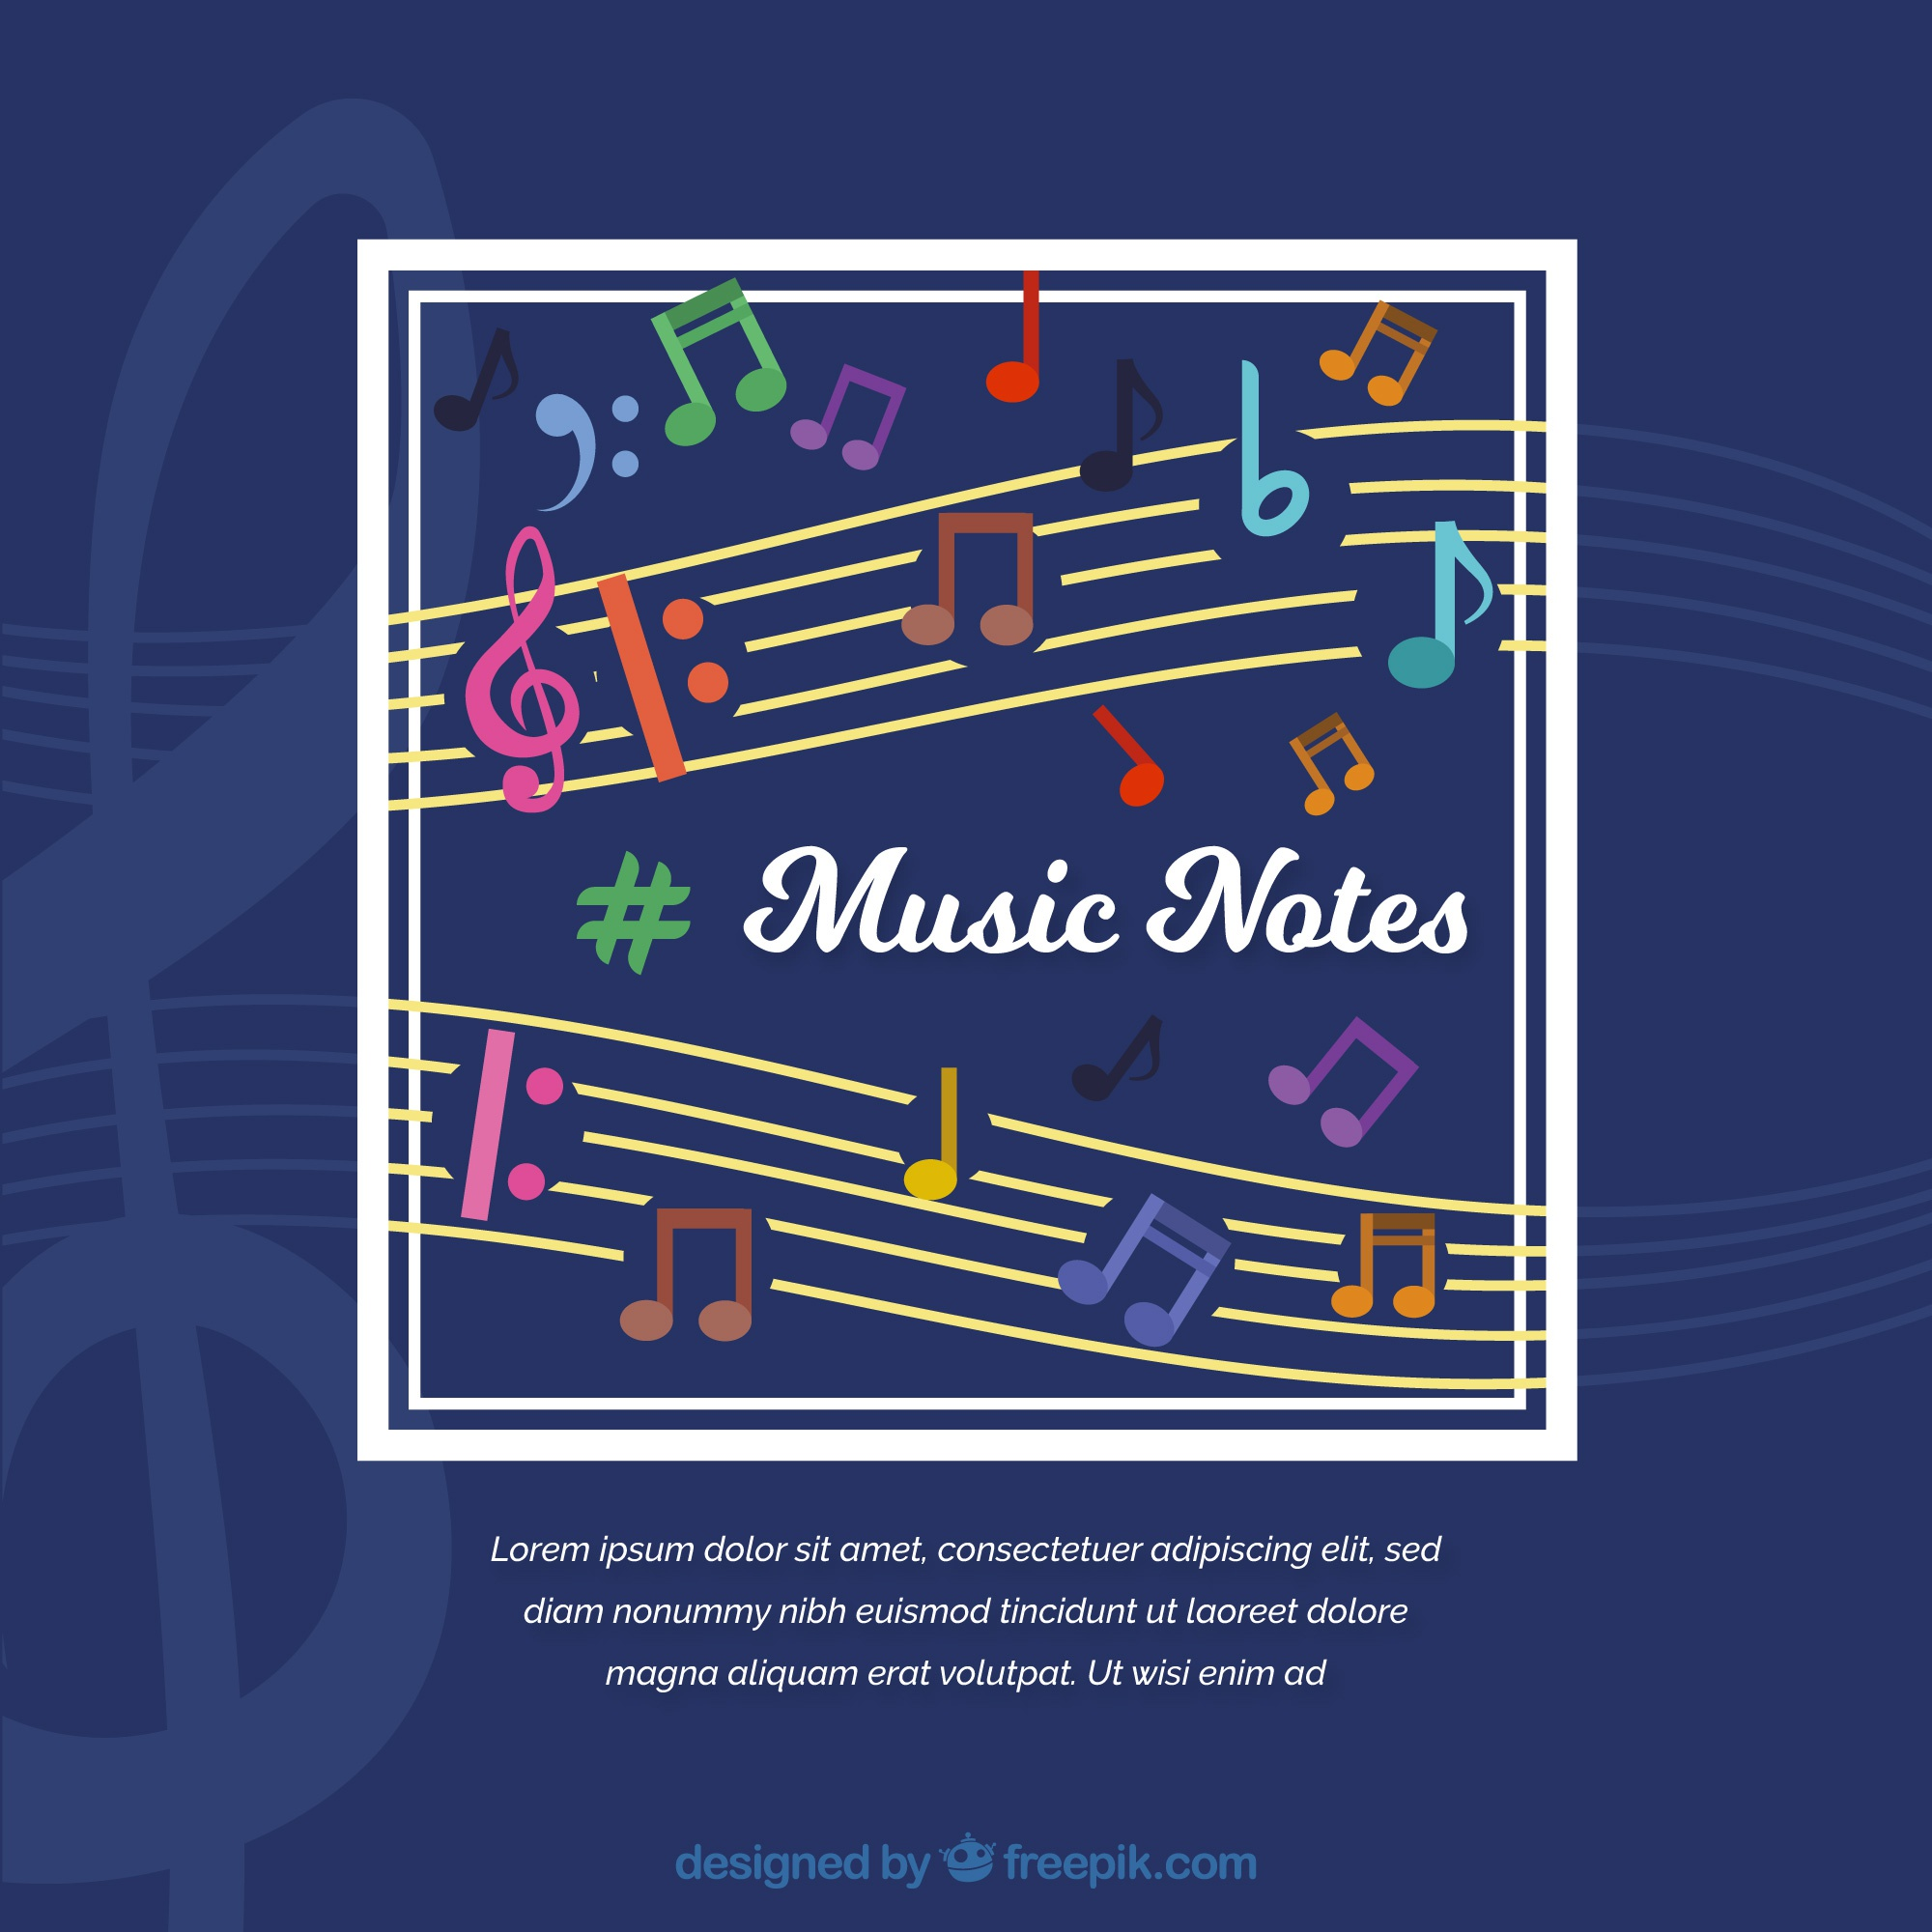 Music notes on blue background